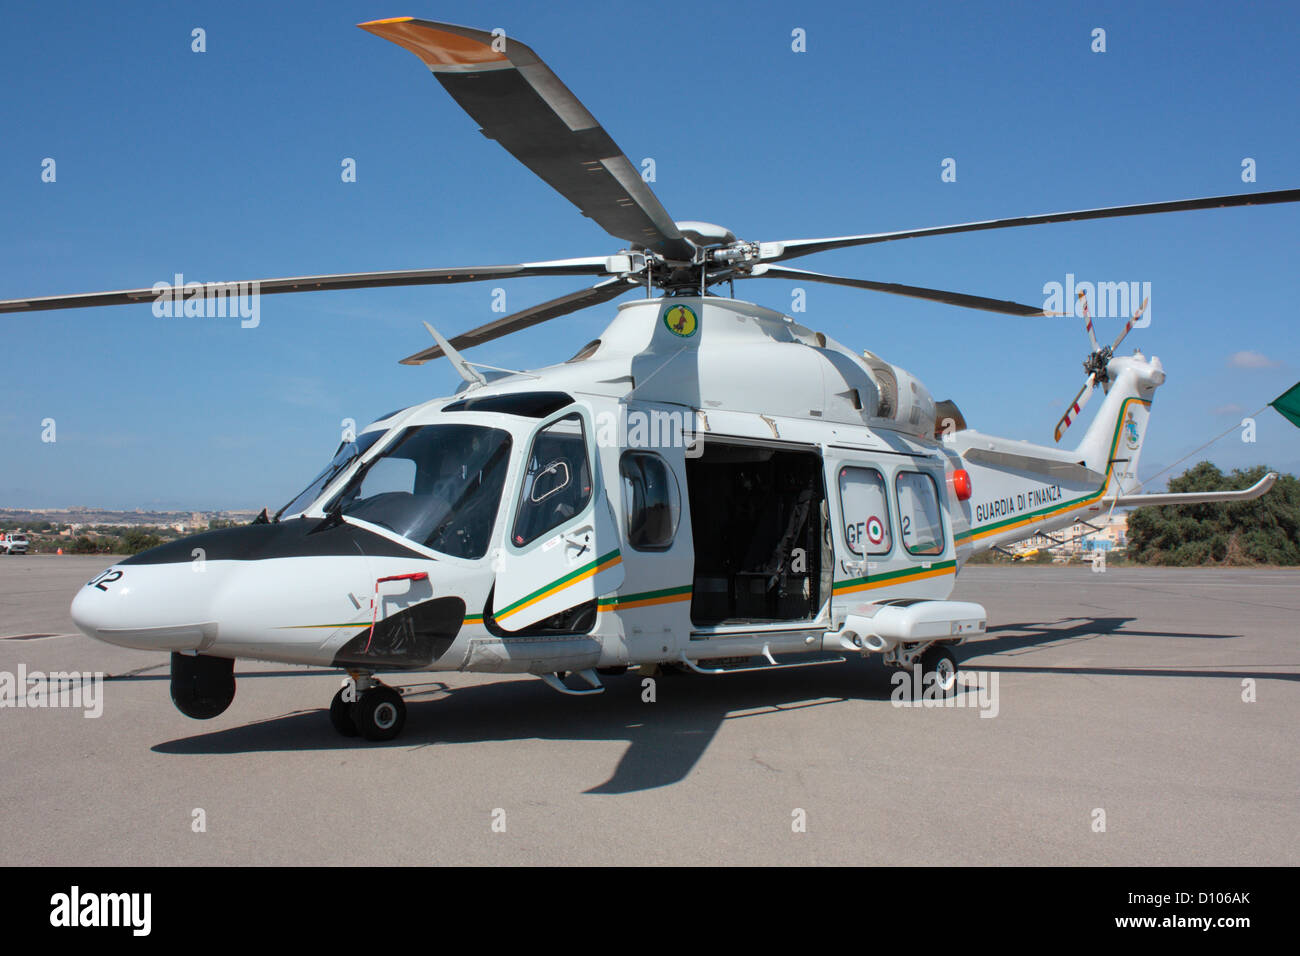 AgustaWestland AW139 helicopter of Italy's Guardia di Finanza or customs service - Stock Image